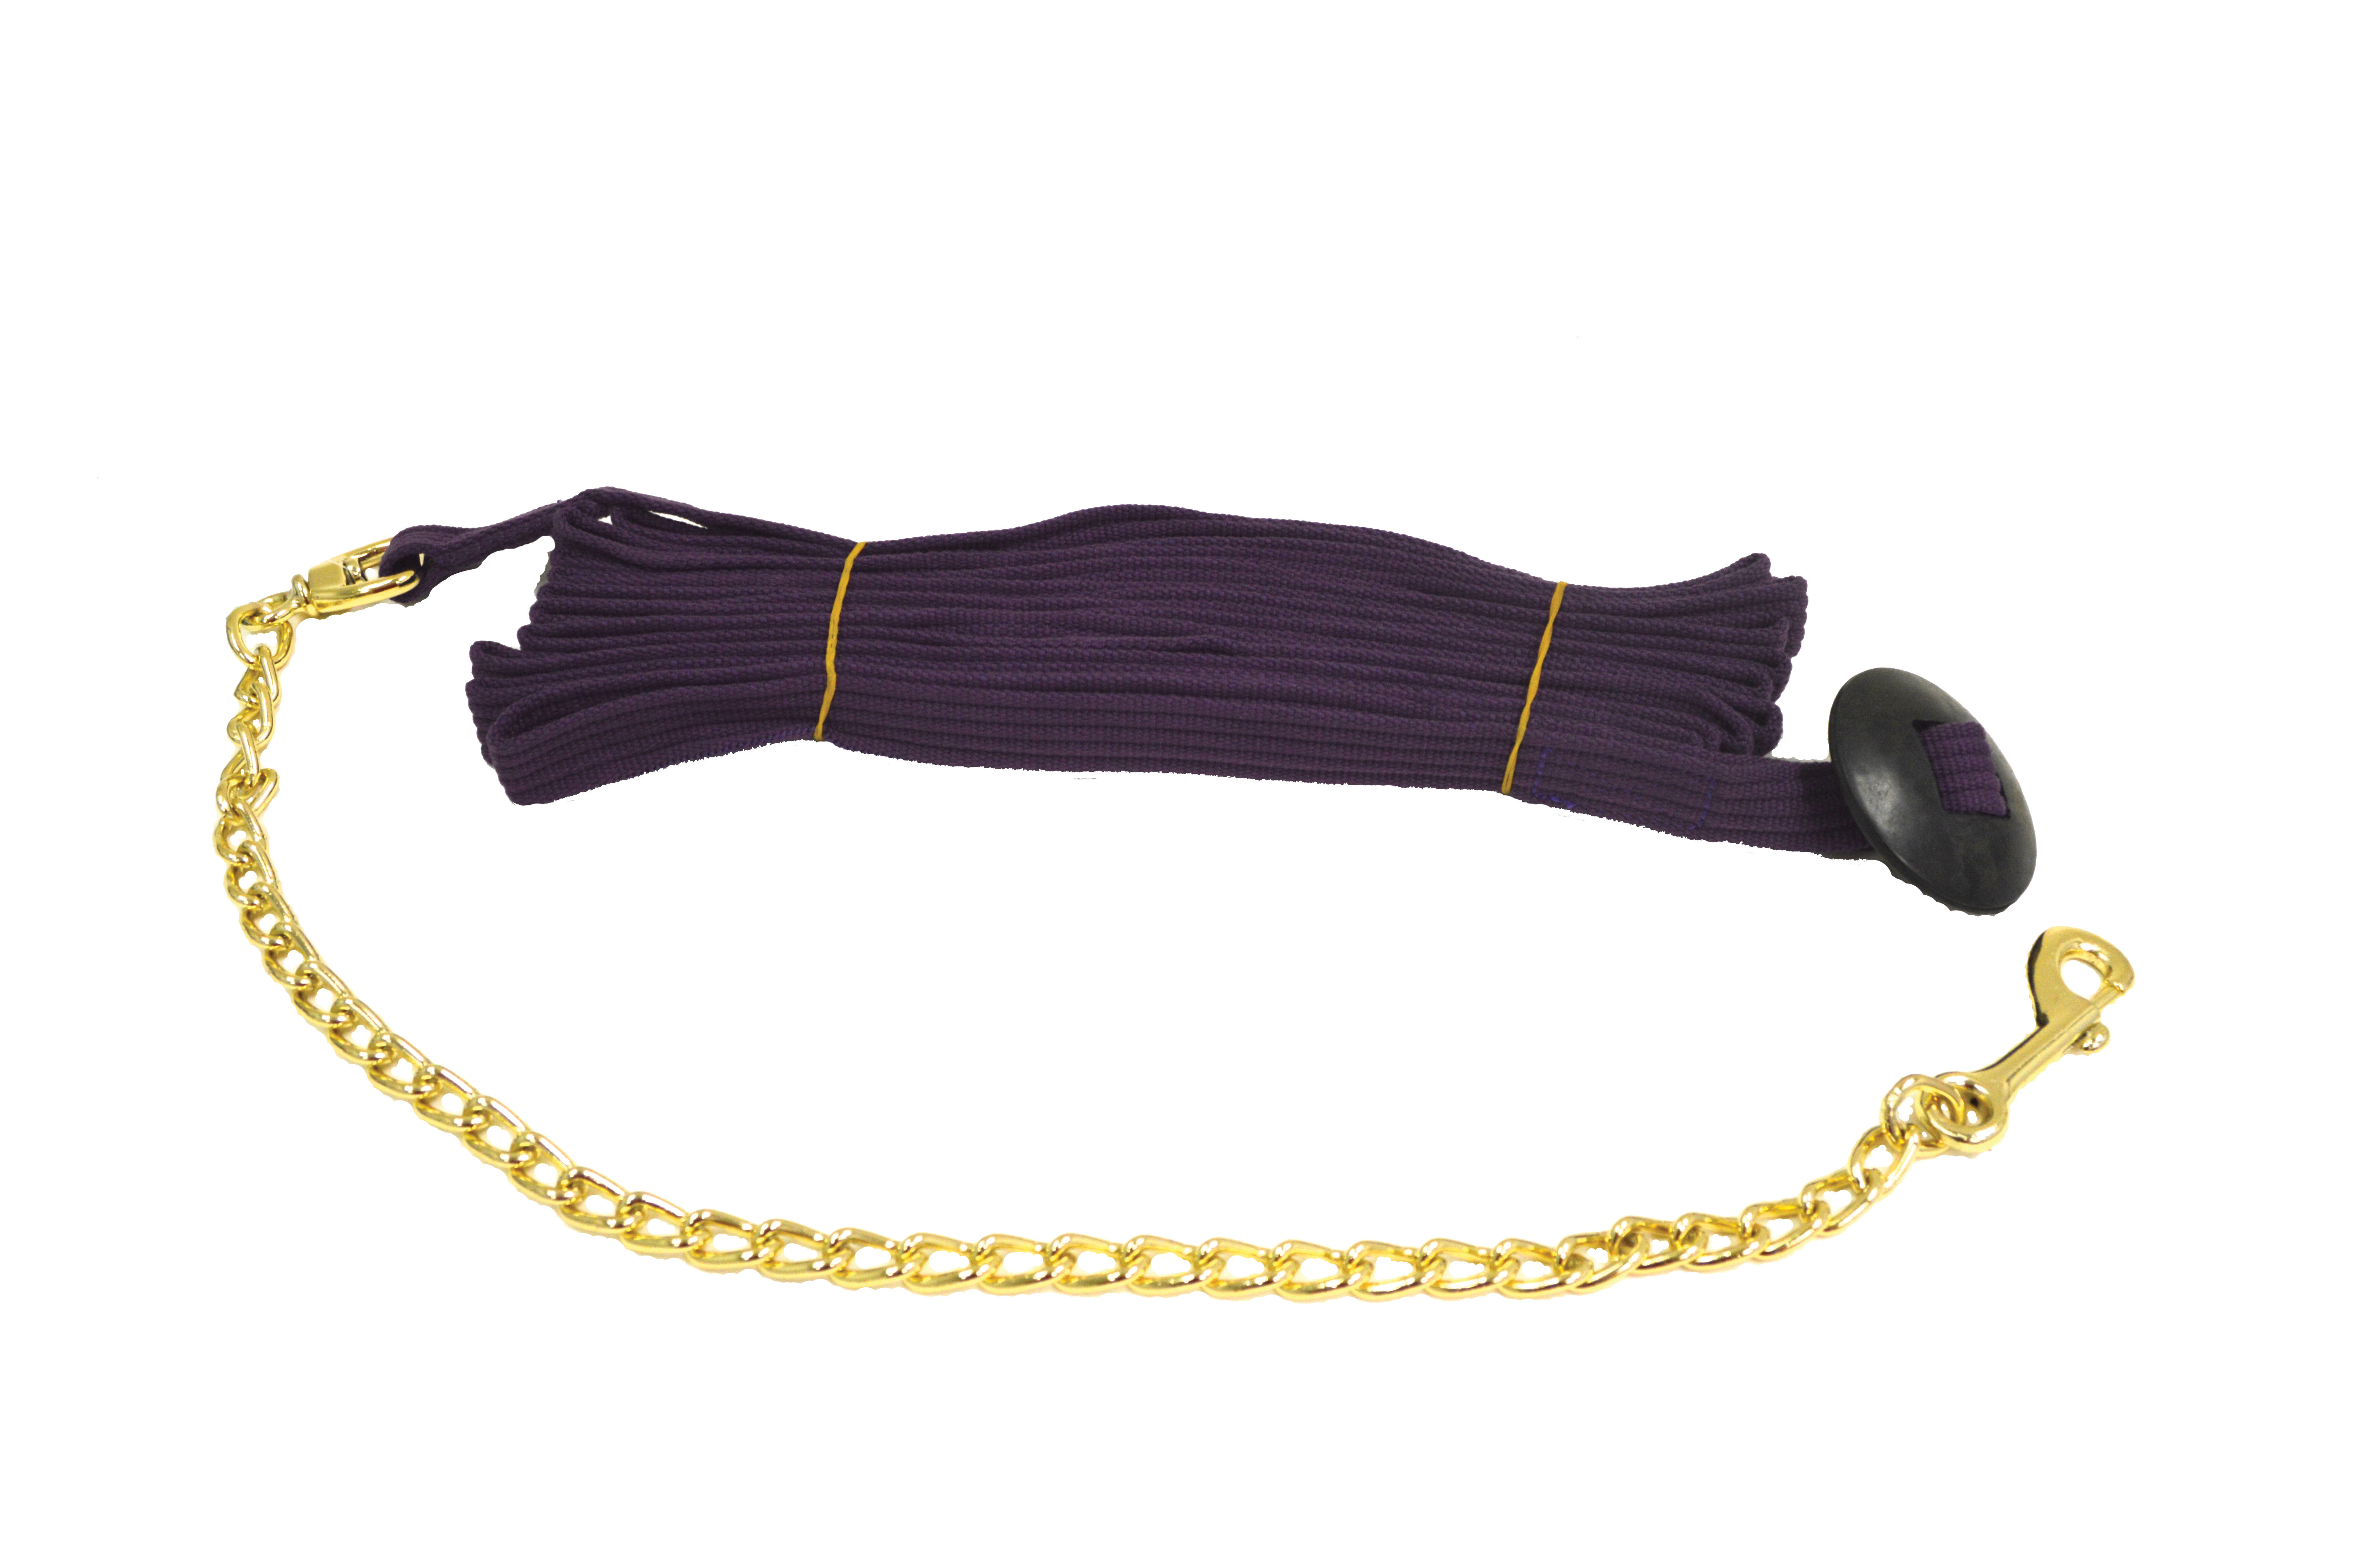 Partrade Lunge Line with Lead Chain